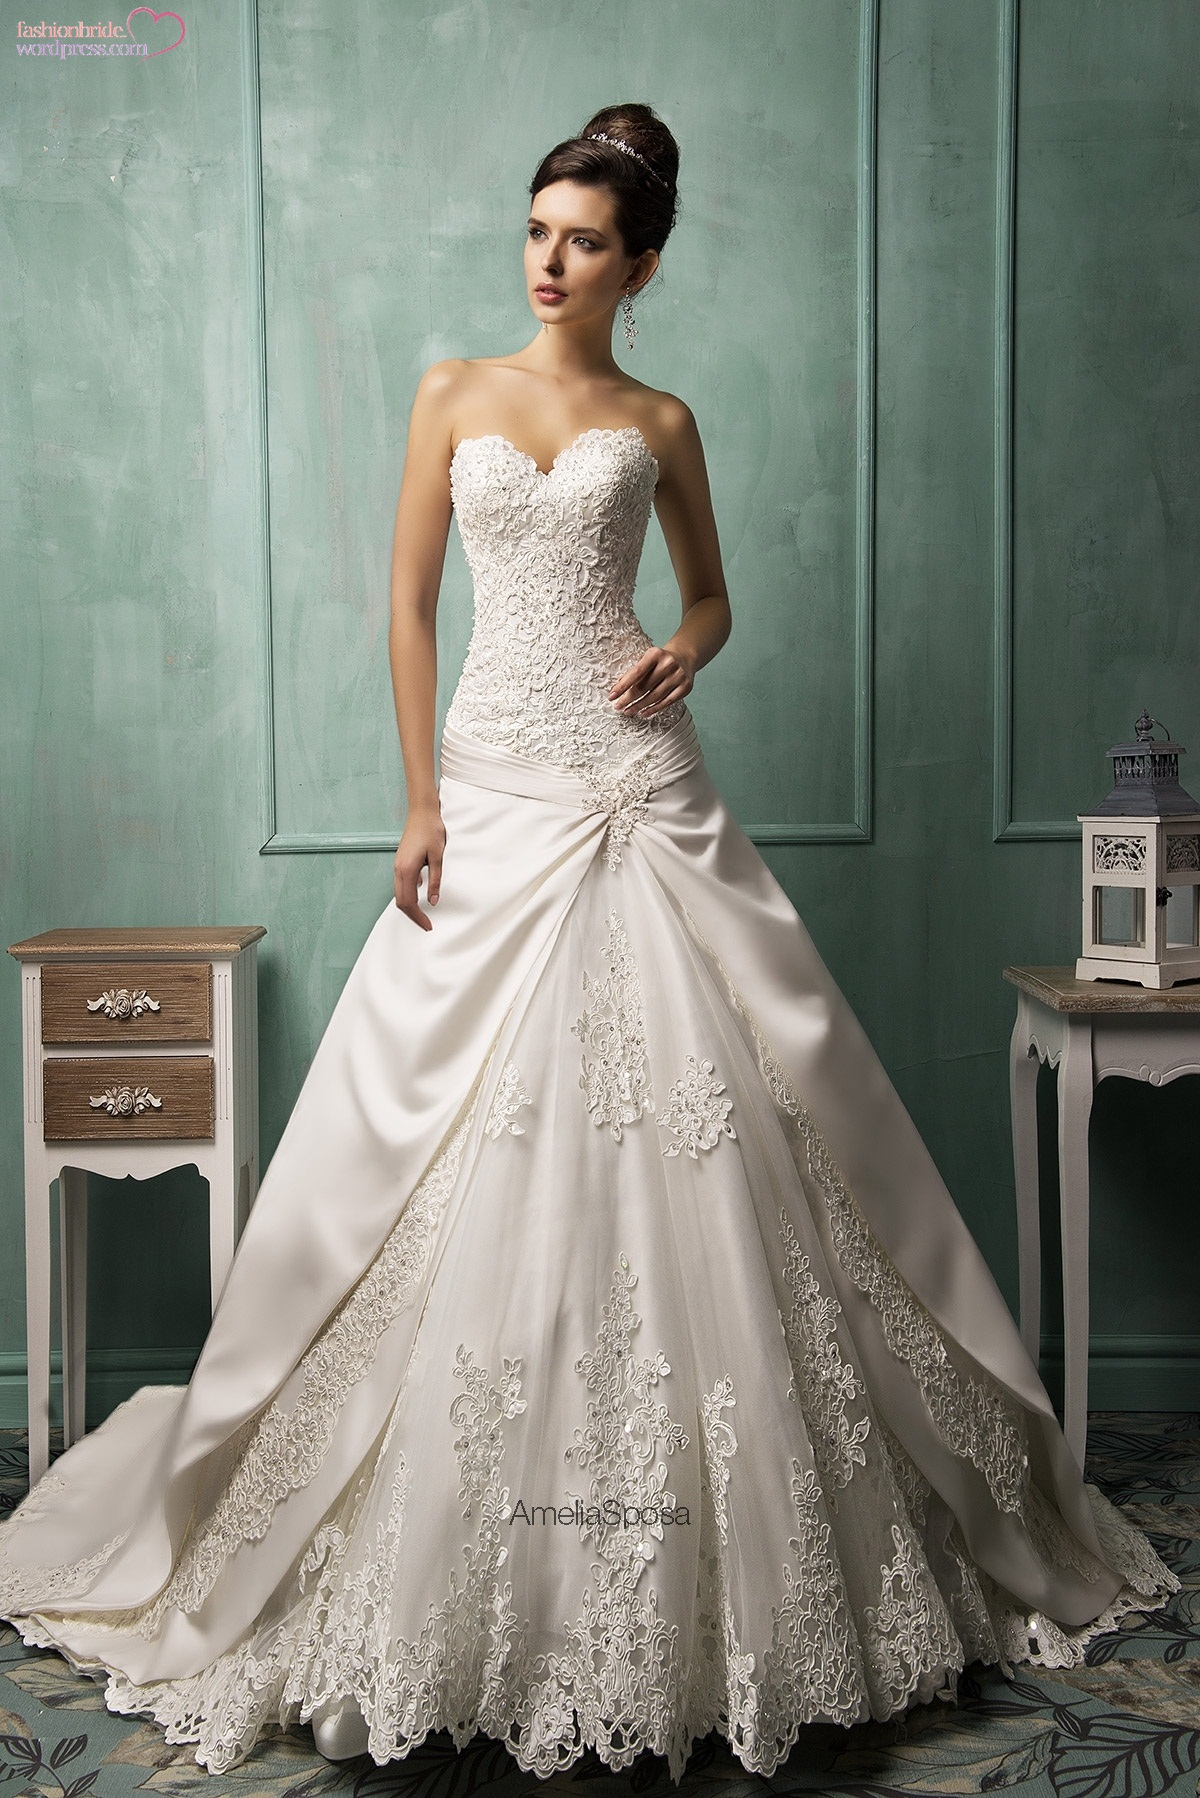 Amelia sposa spring 2014 bridal collection iii the for Wedding dresses made in italy